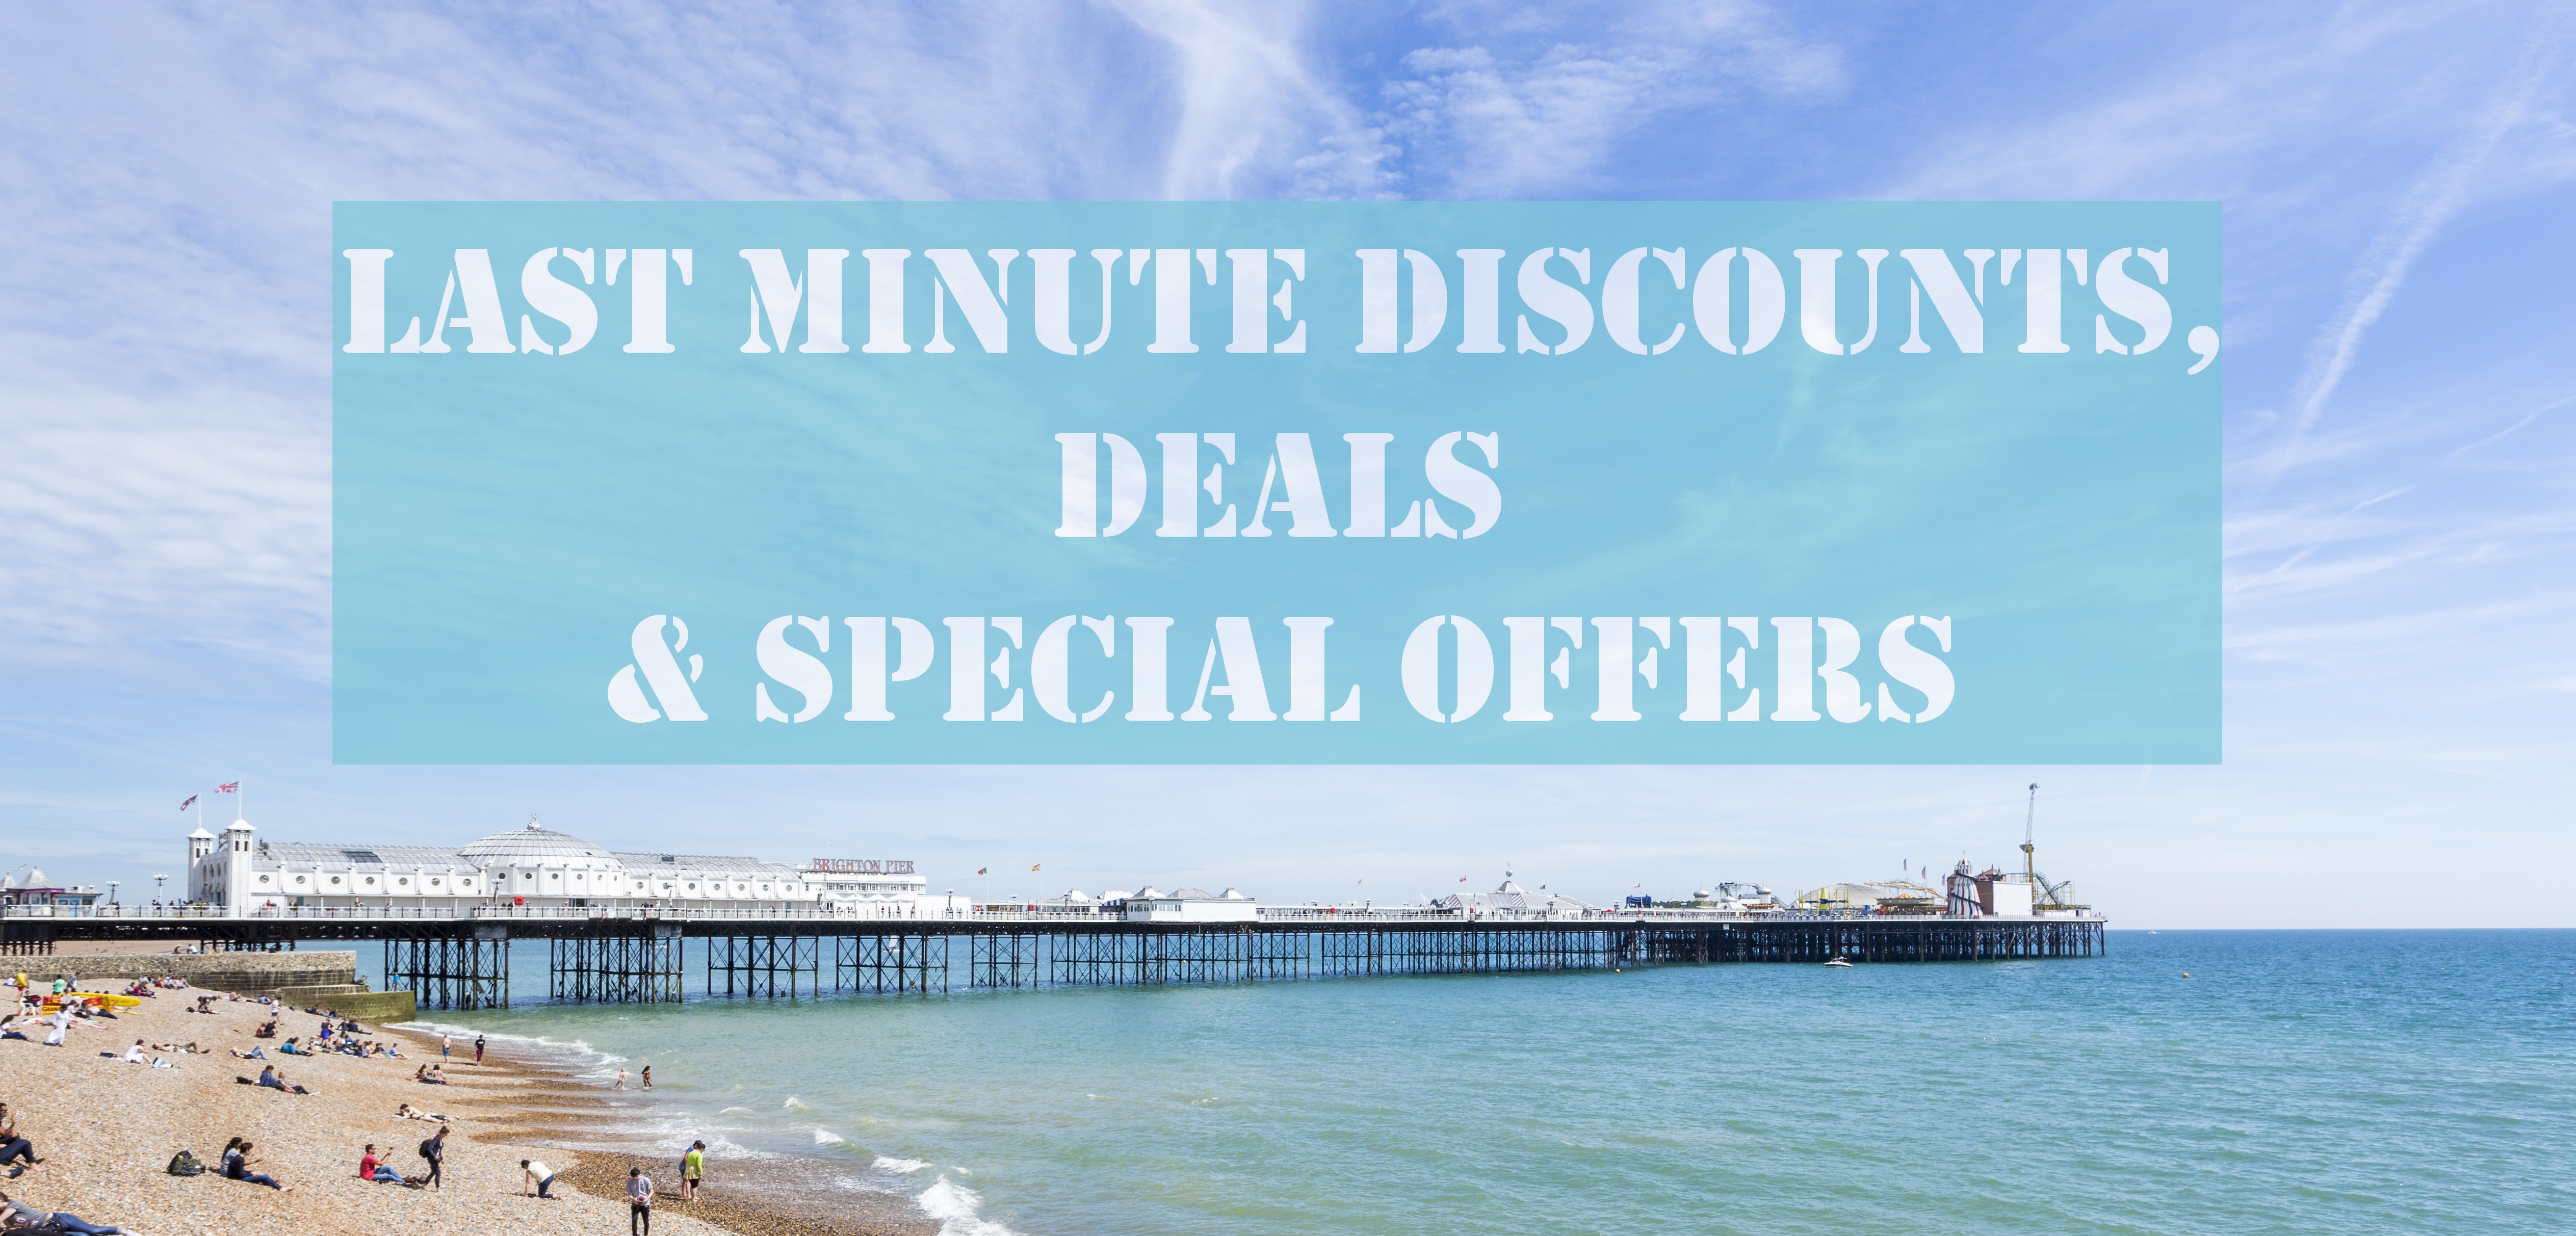 Brighton-last-minute-discounts-deals-special-offers